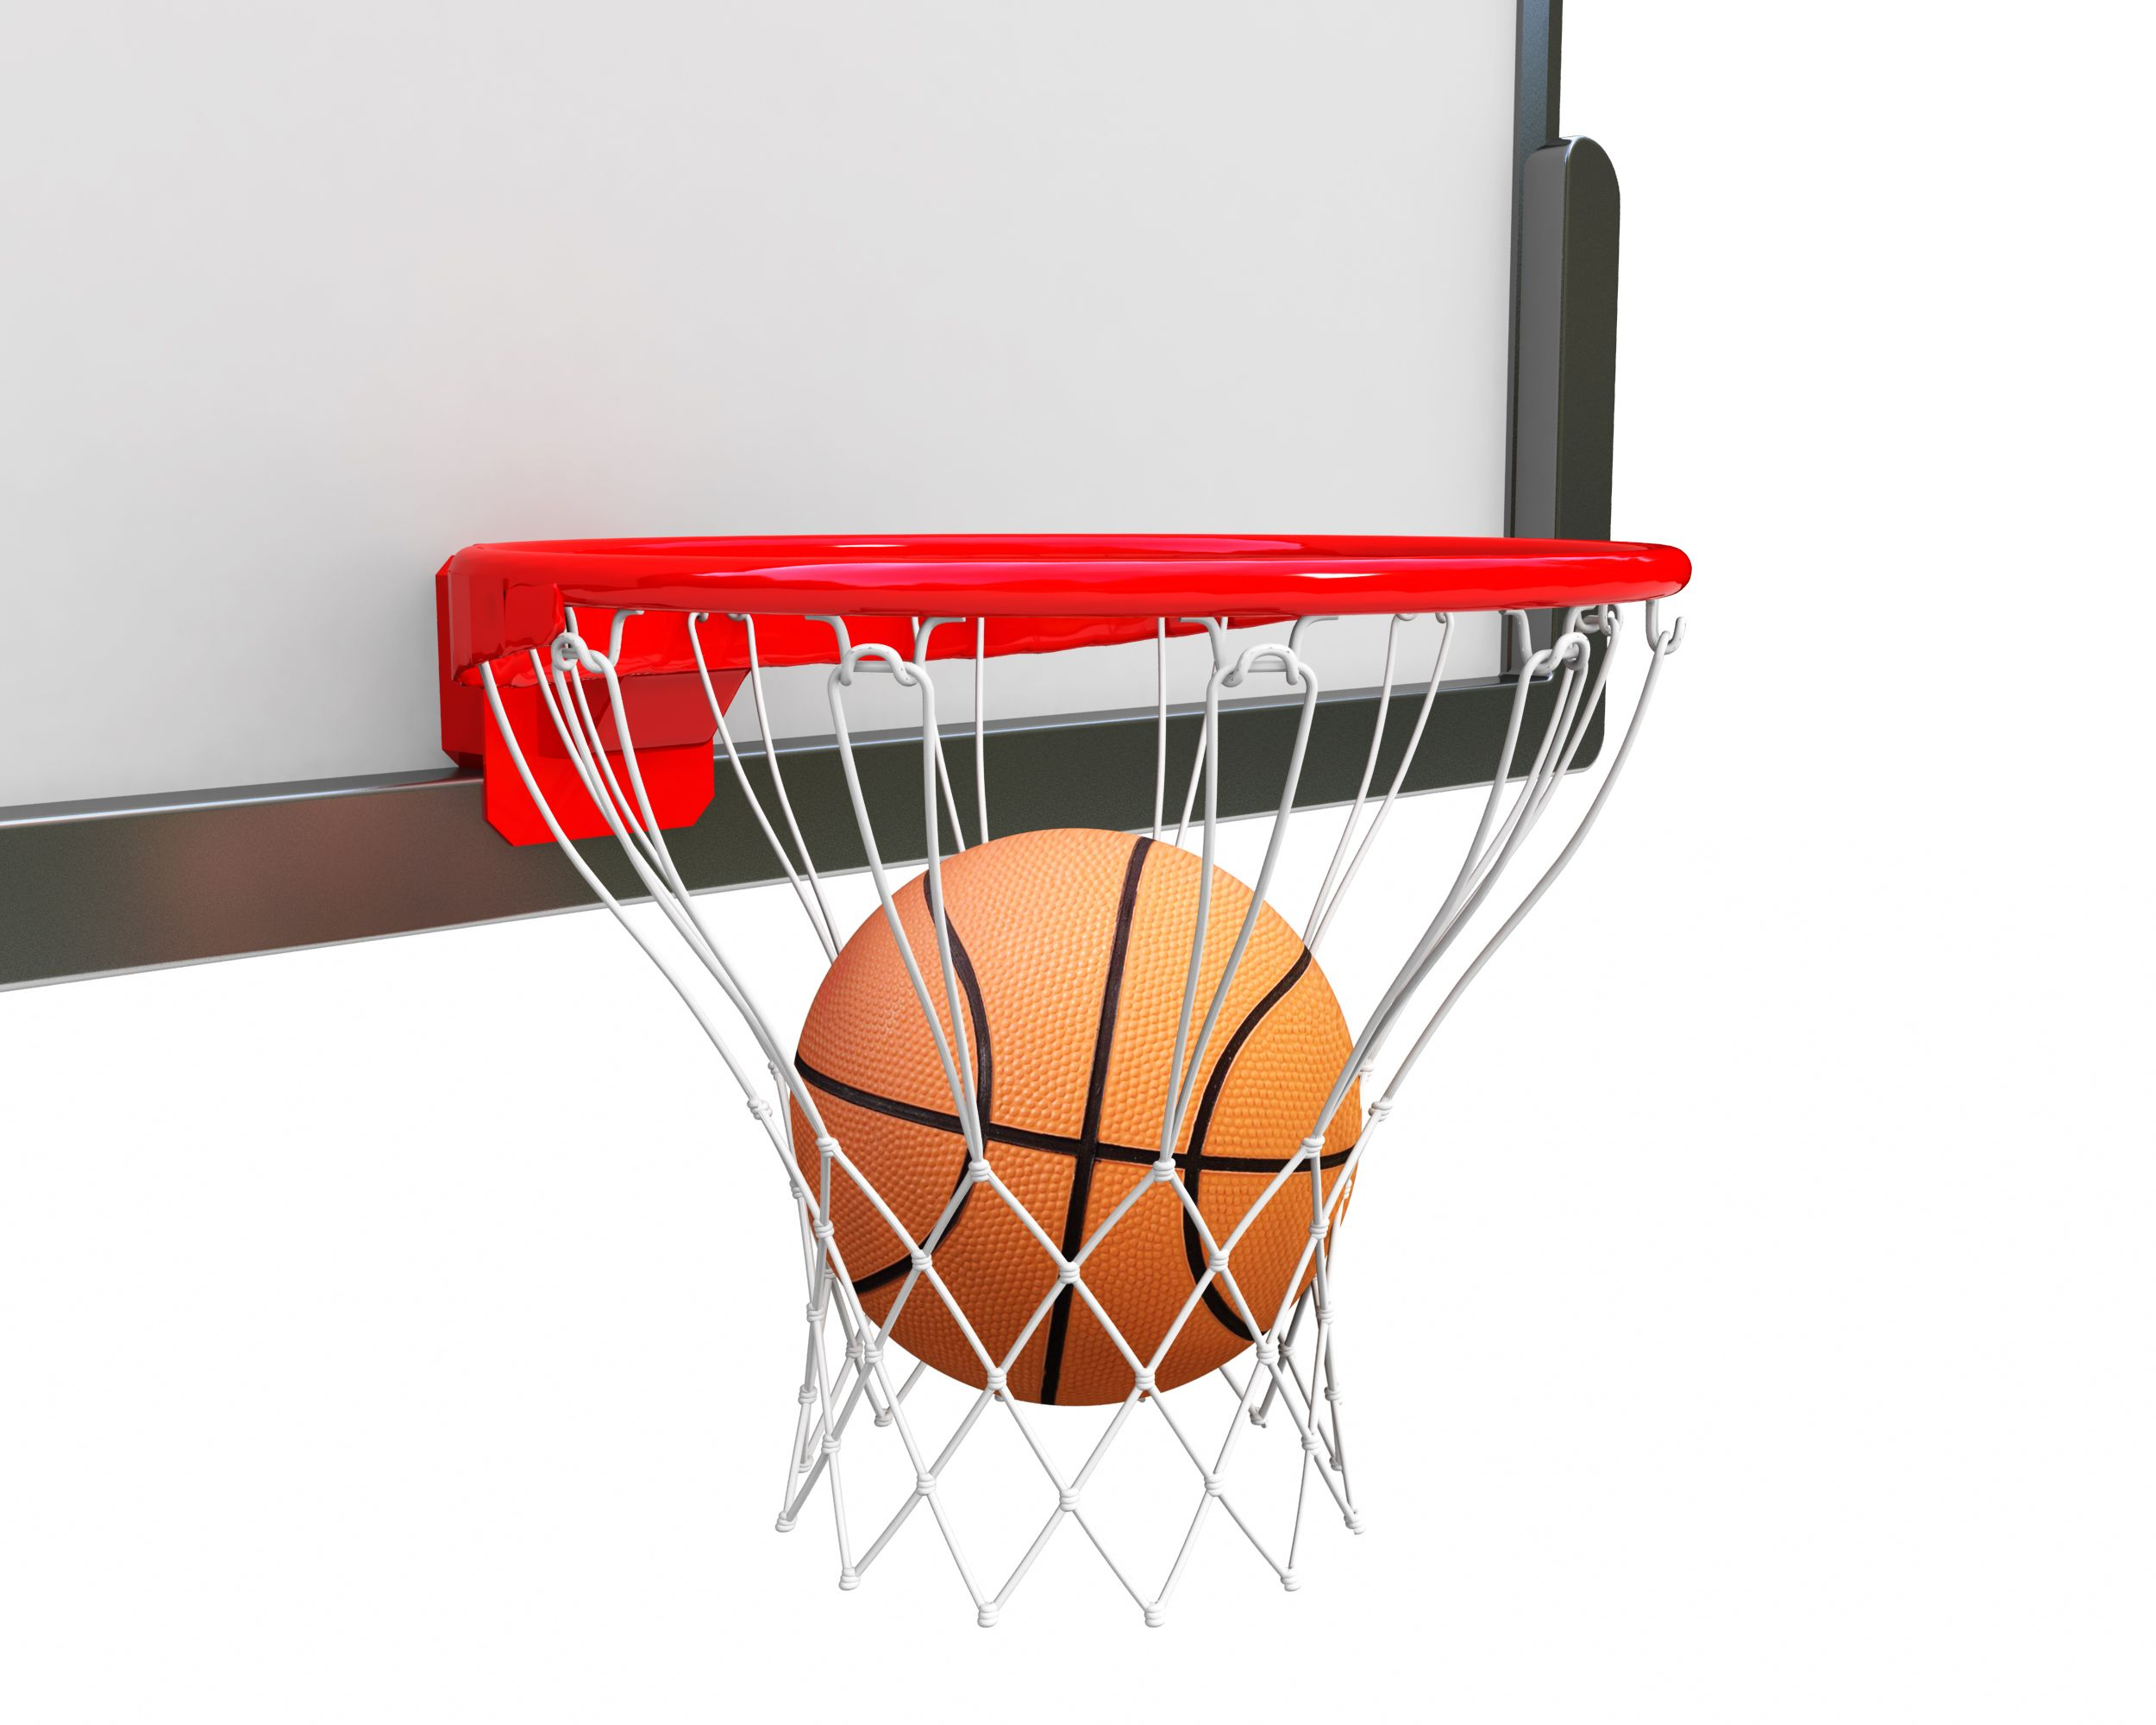 Ball Inside Ring For Basketball Game Stock Photo Templates